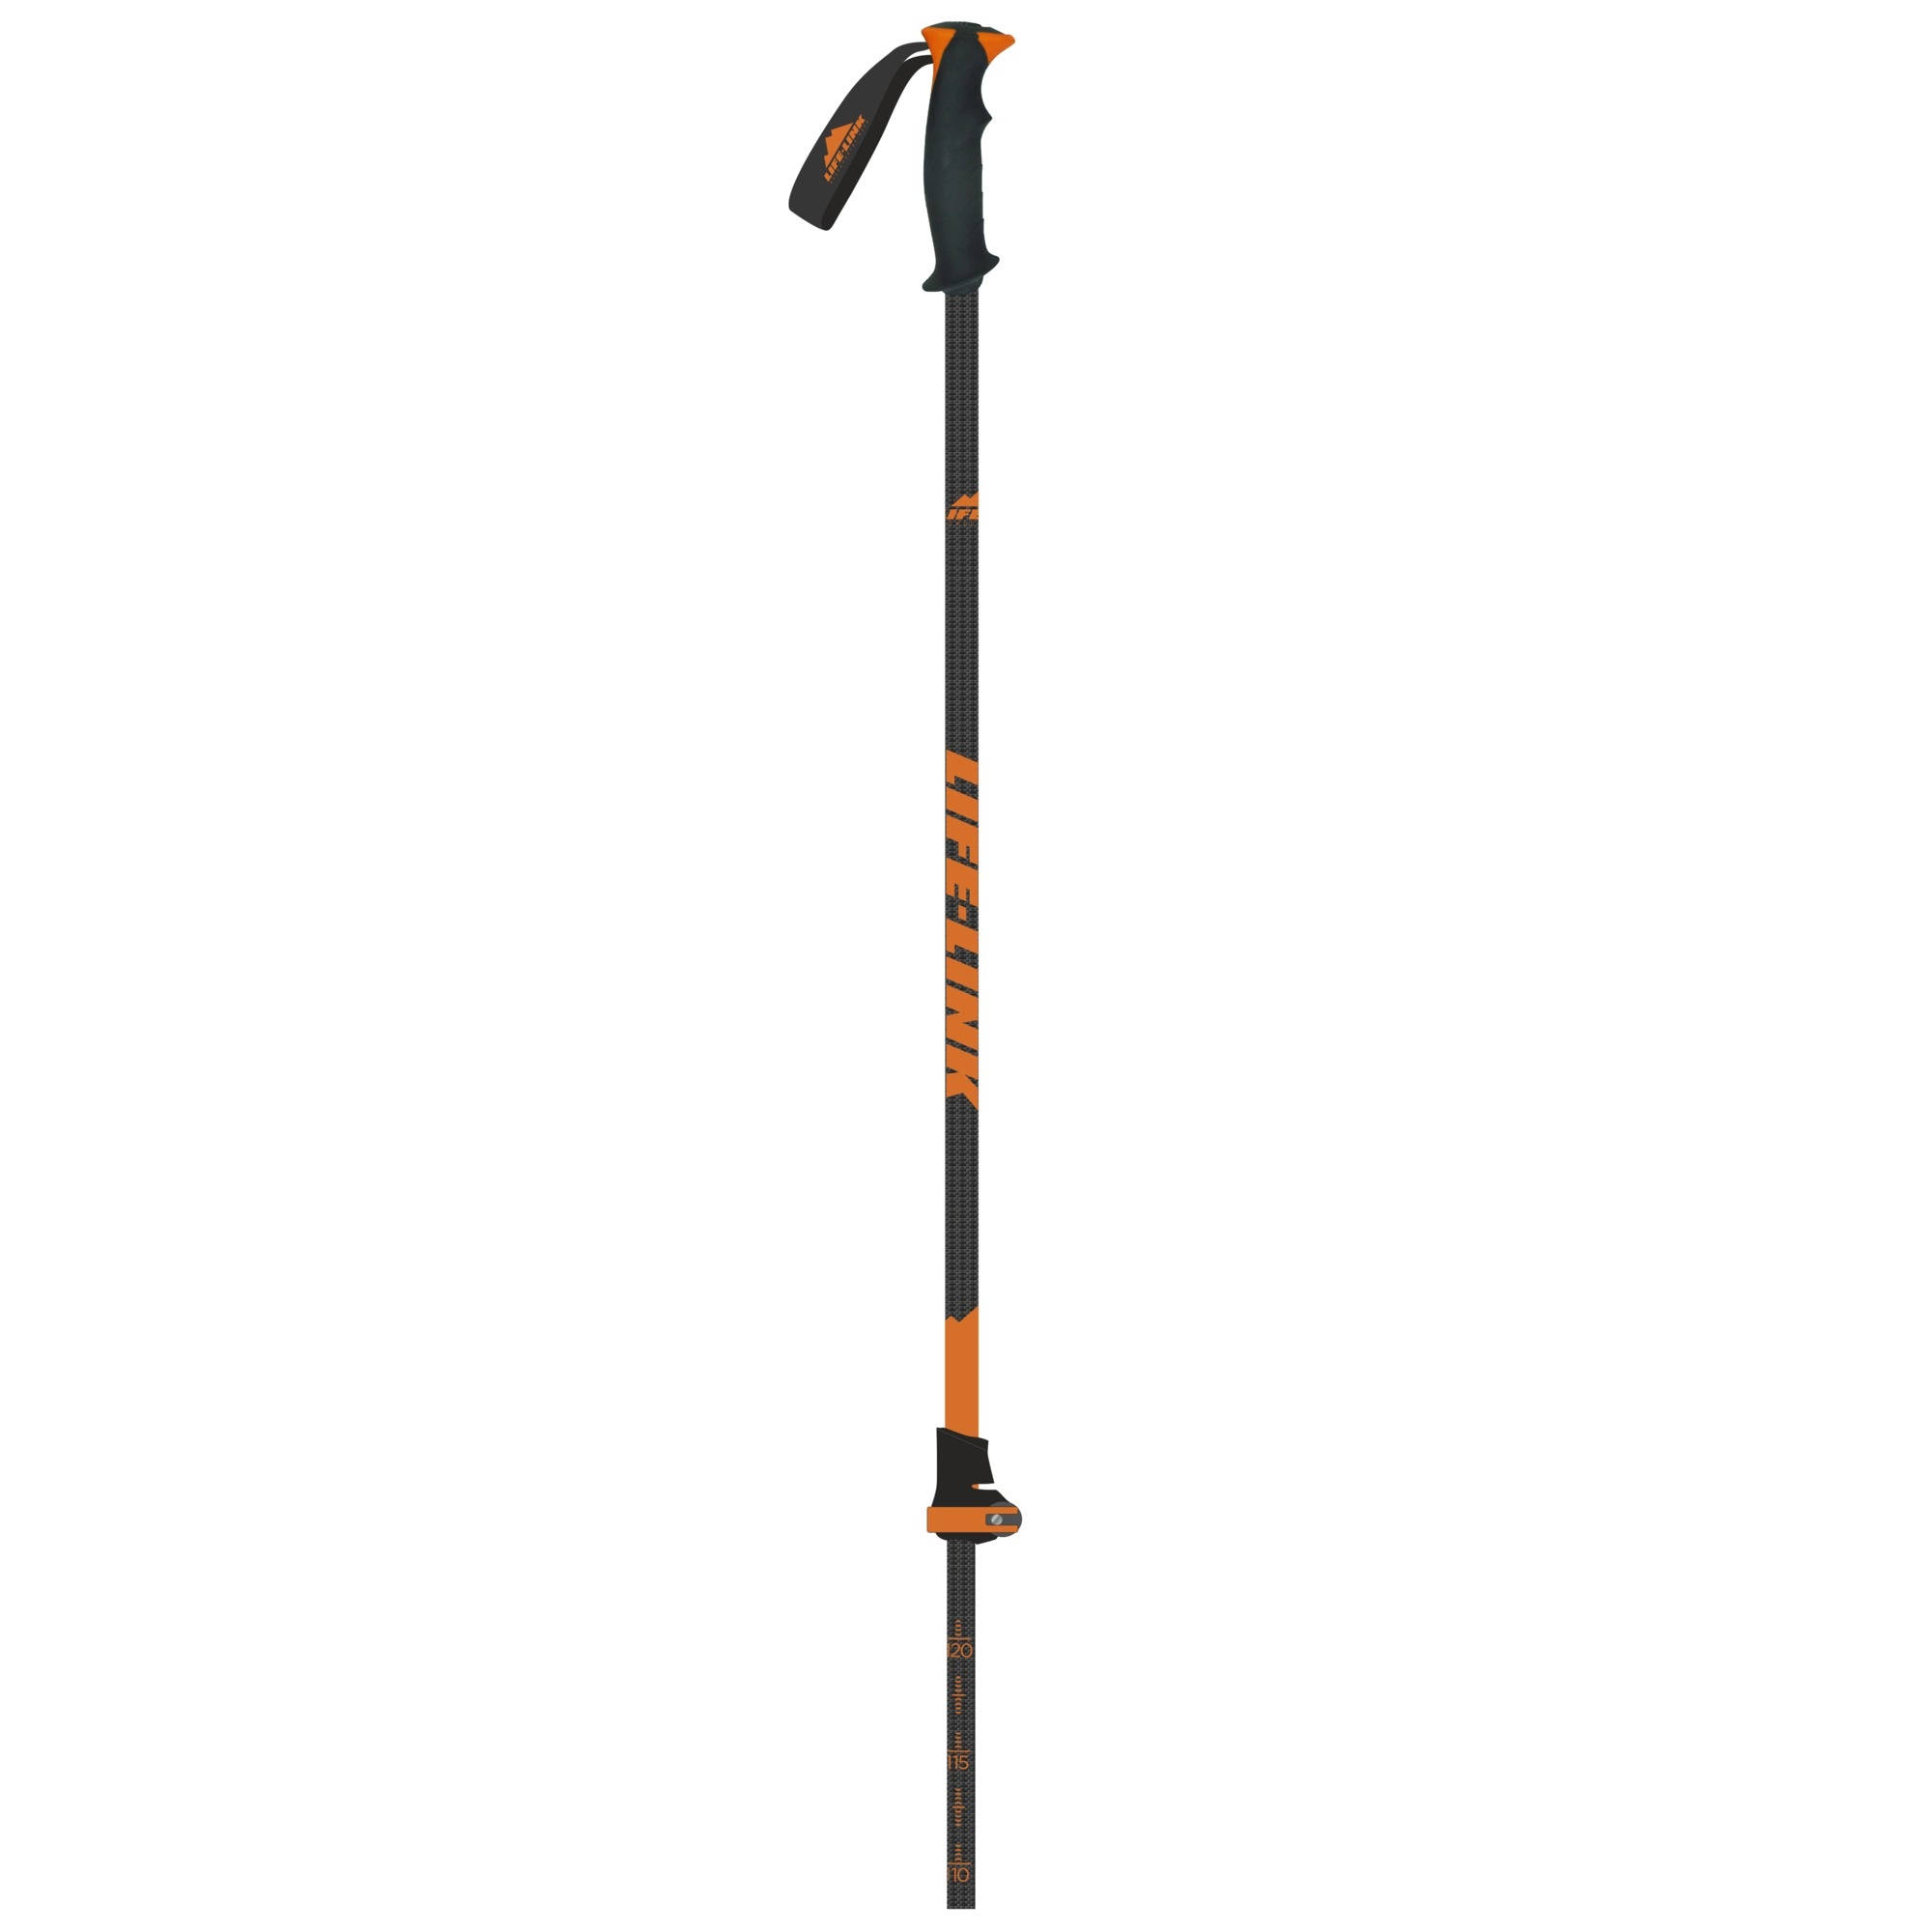 Life-Link Carbon Guide Ski Pole